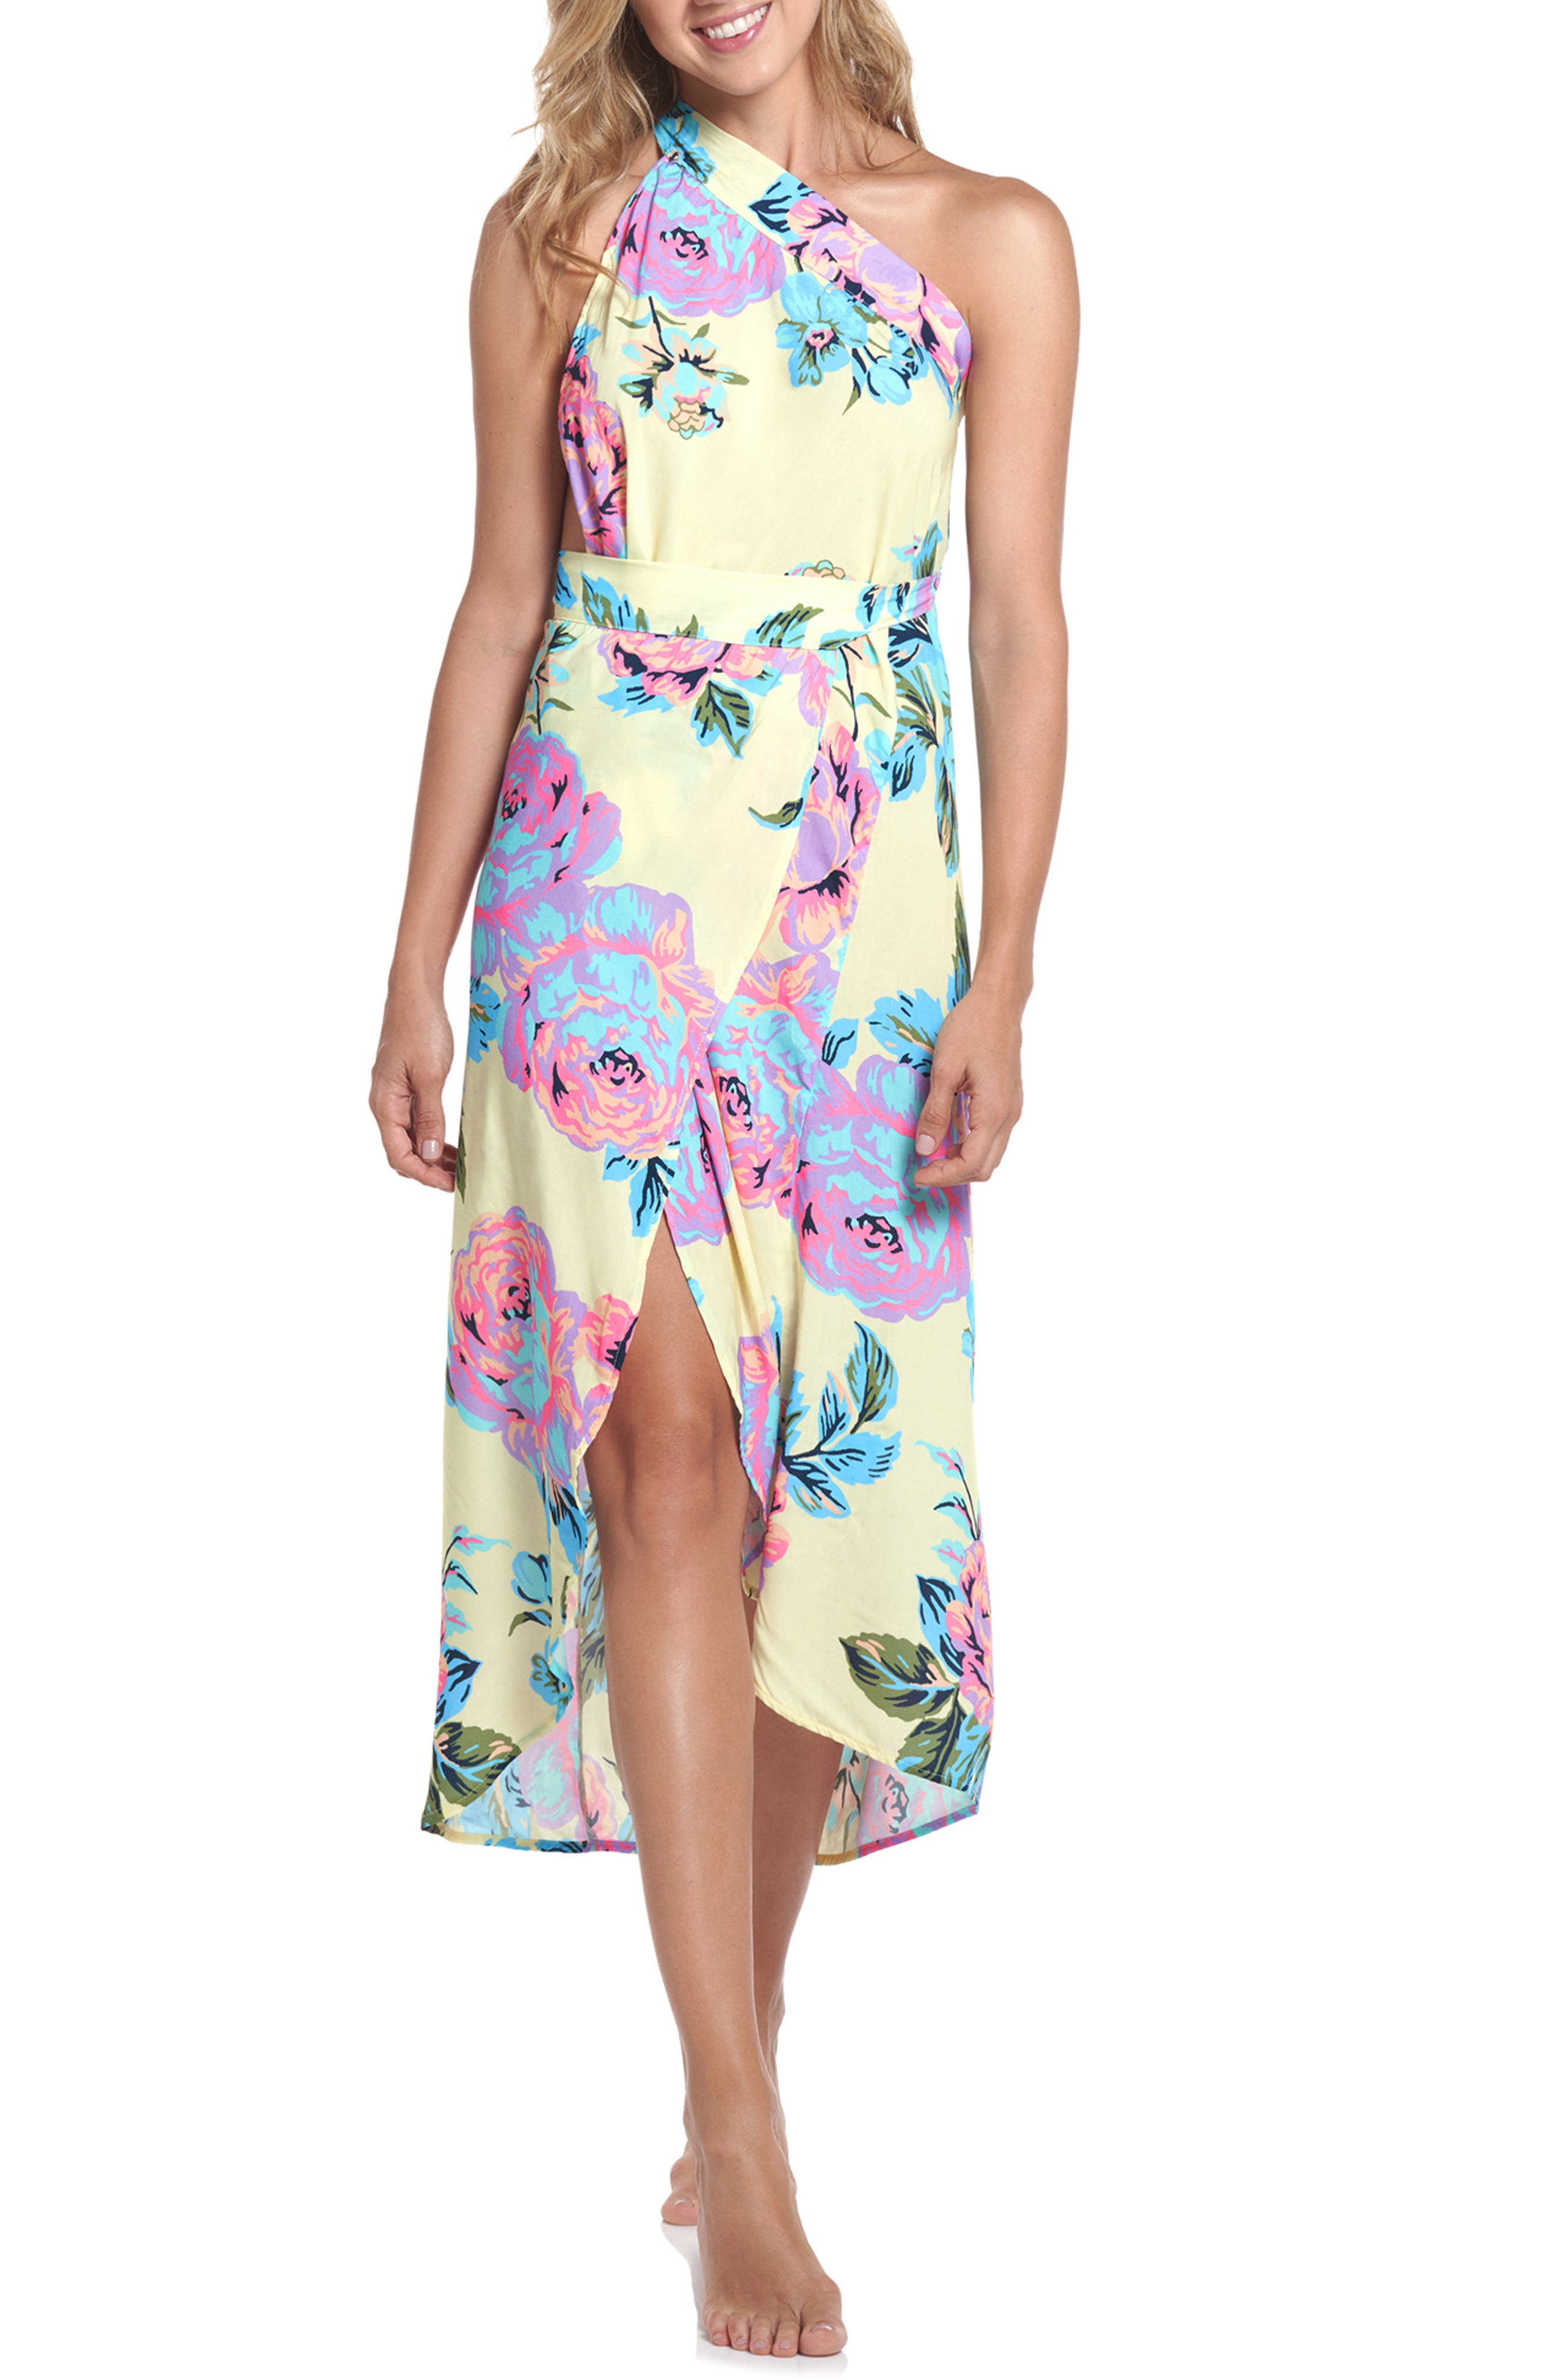 Late Morning Kisses Convertible Cover-Up Skirt